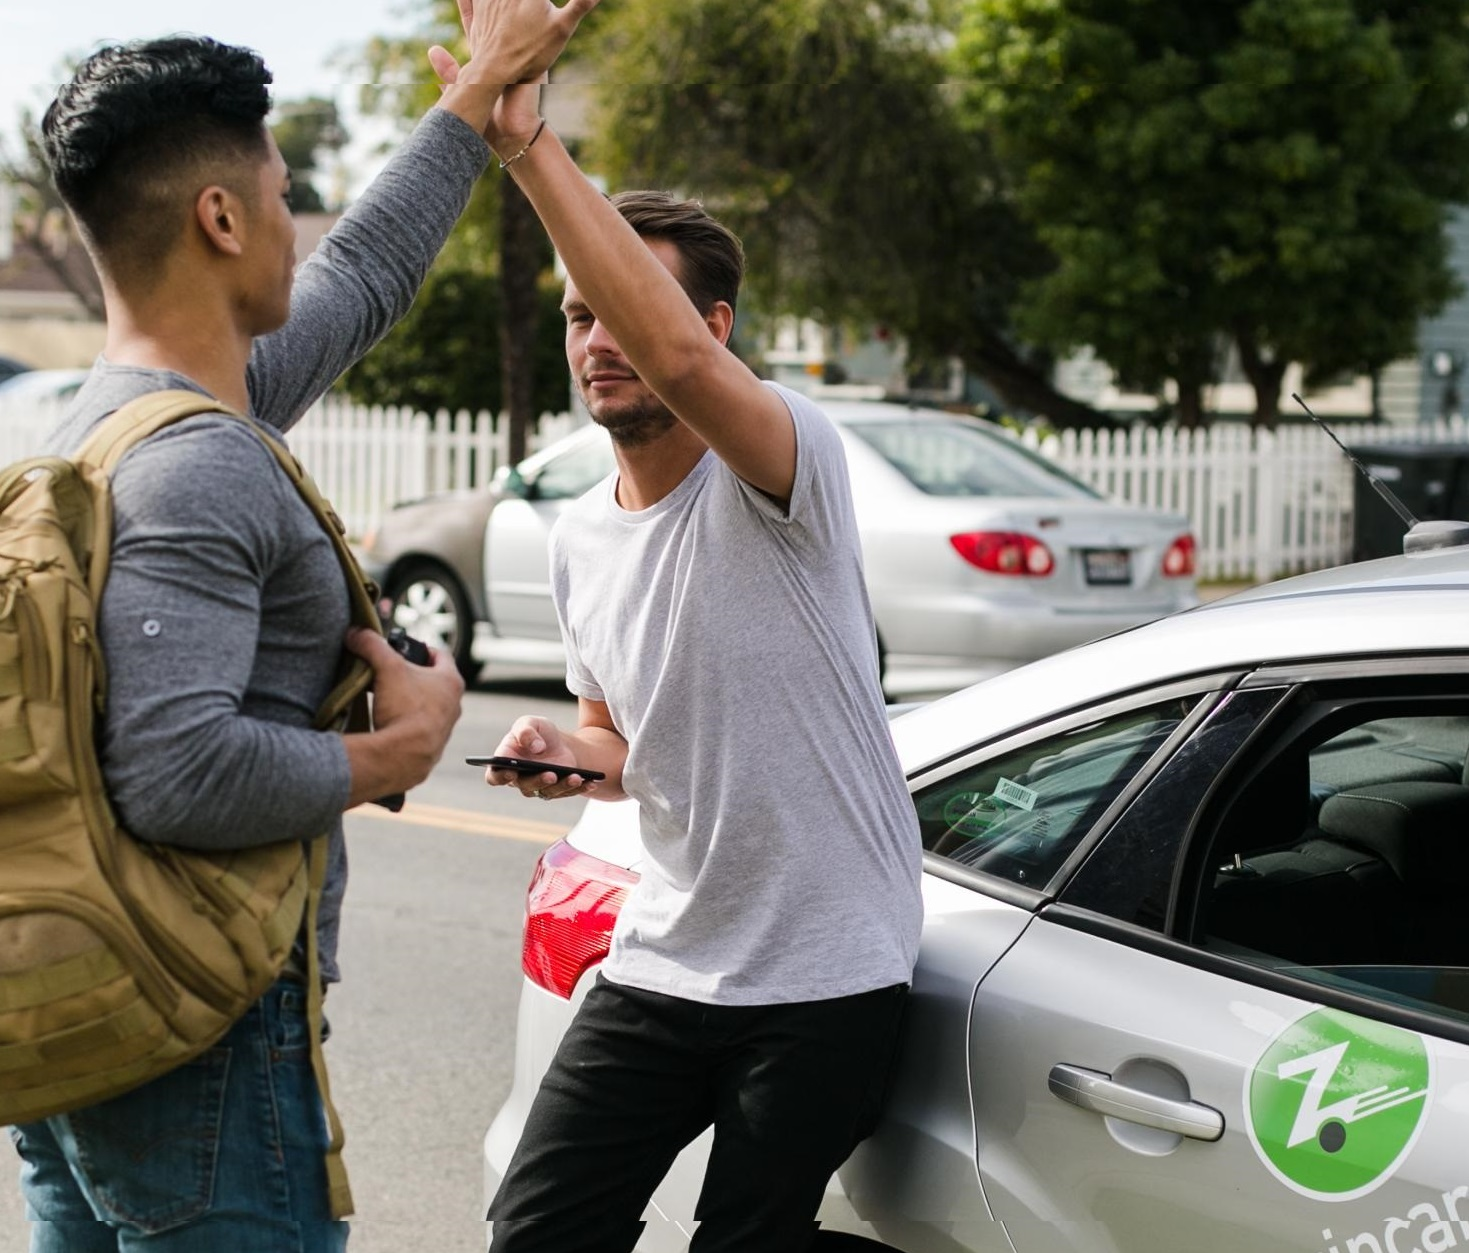 Vehicle Subscription Services, Car Sharing by Another Name